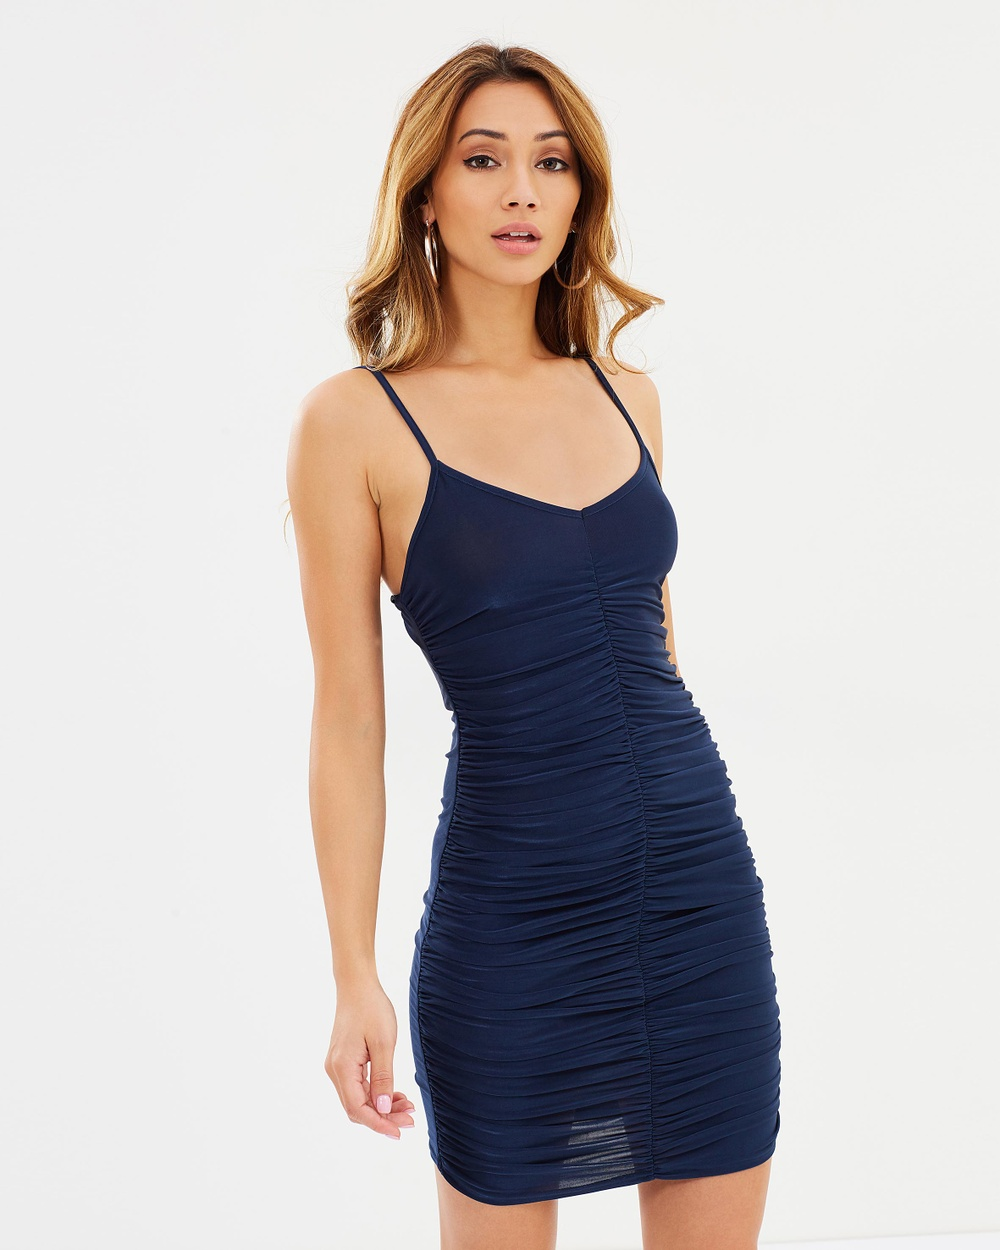 Missguided Slinky Ruched Strappy Front Mini Dress Dresses Navy Slinky Ruched Strappy Front Mini Dress